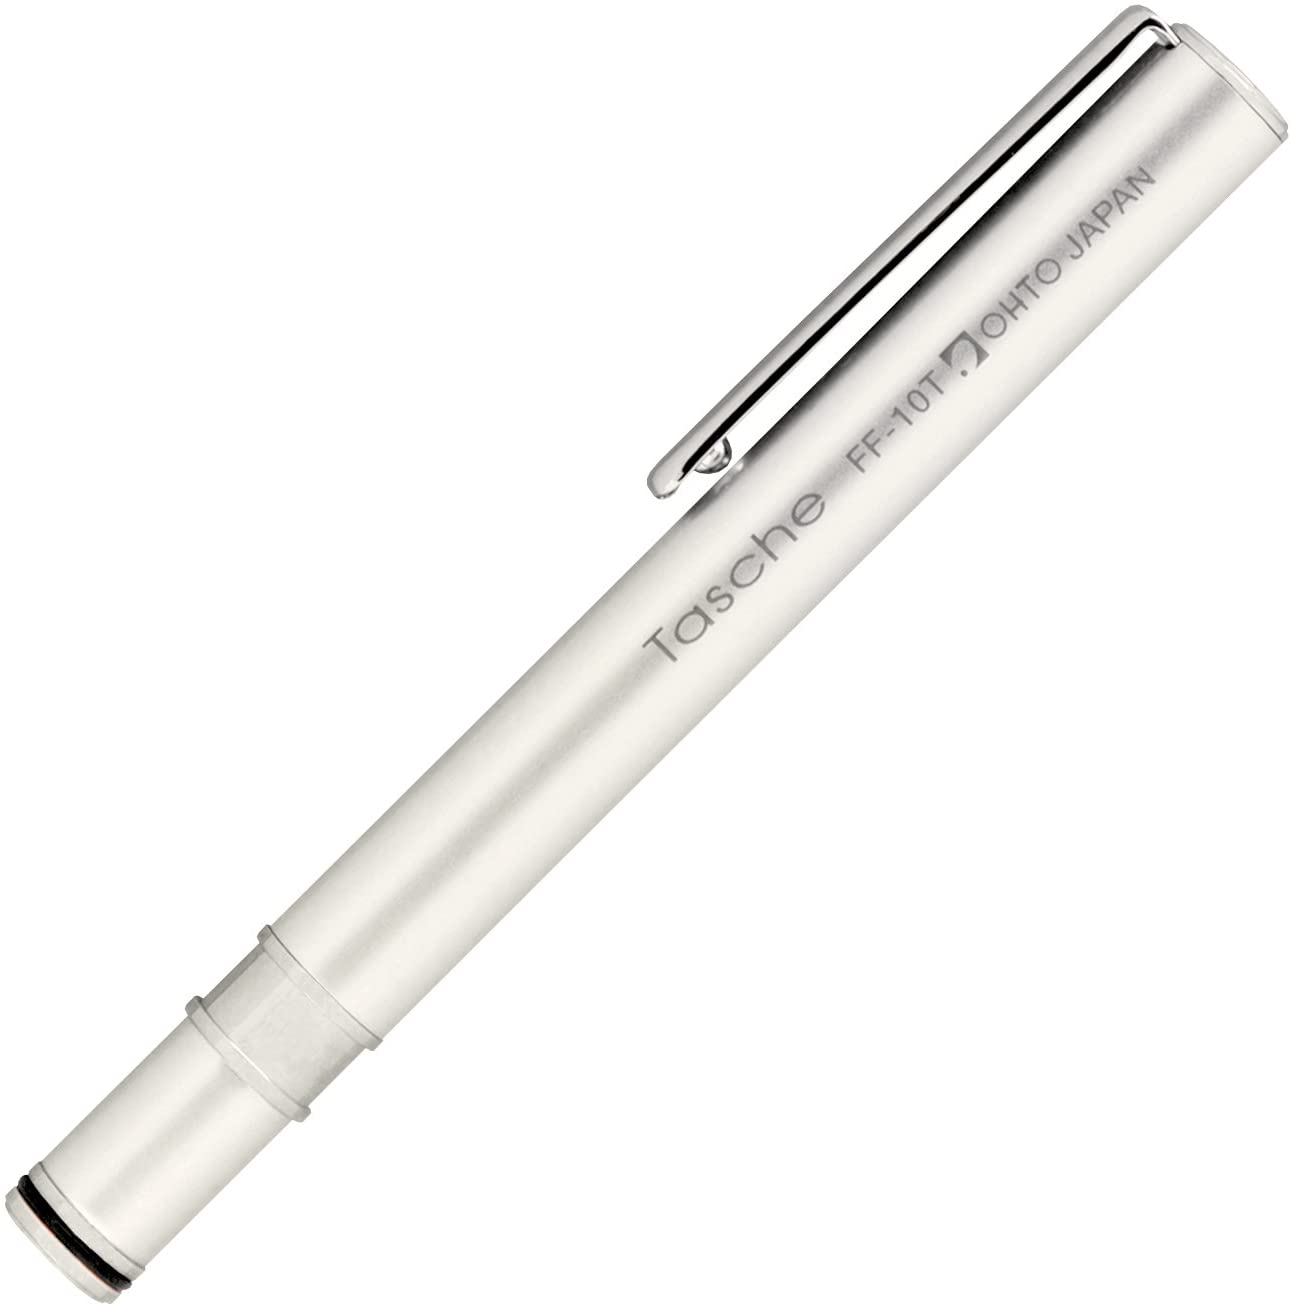 OHTO - Tasche Silver Fountain Pen - 0.5mm - Writing Color: Black